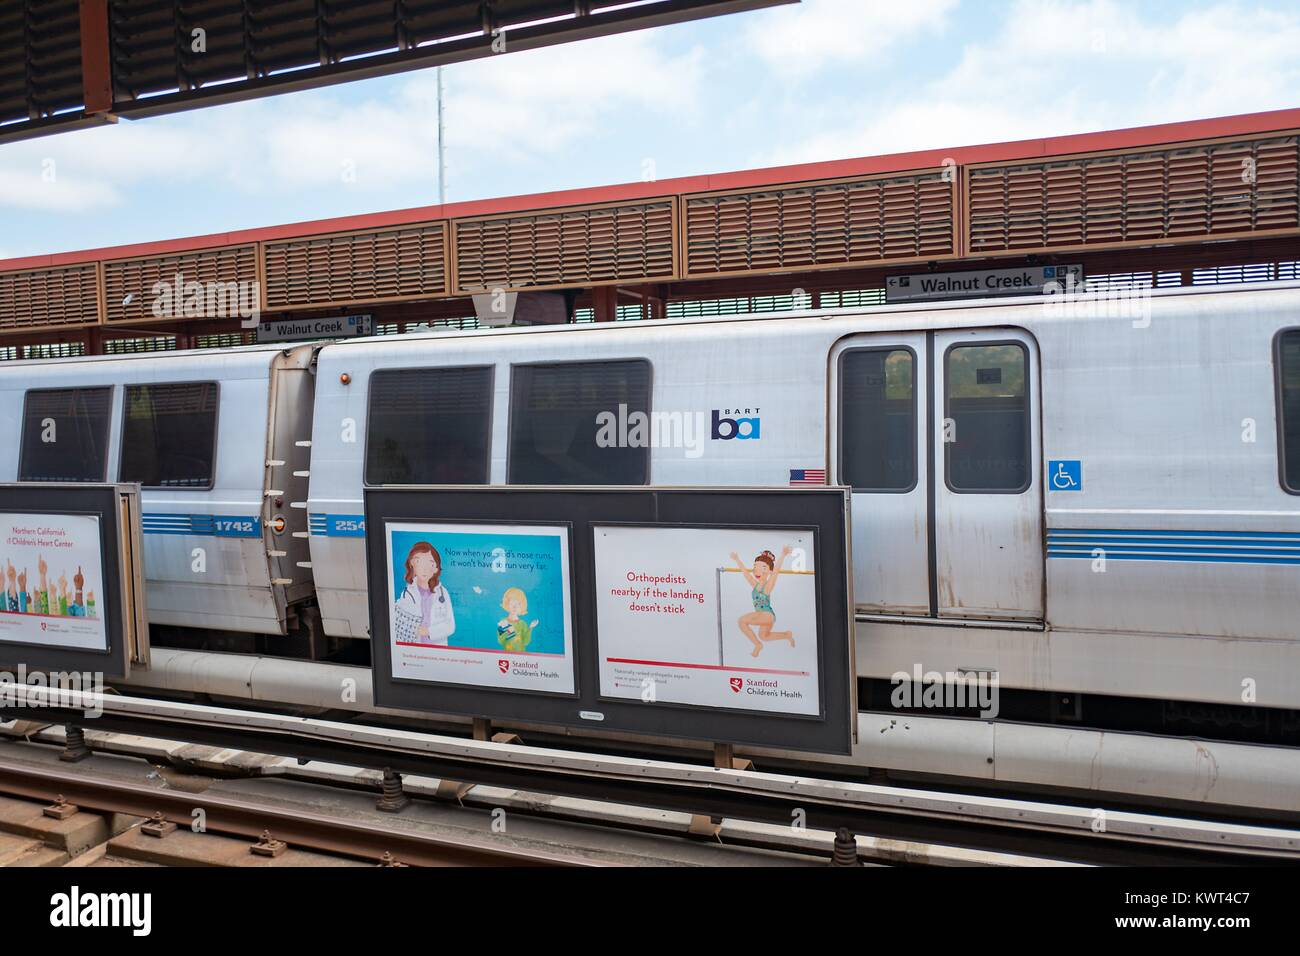 A BART train approaches the platform and prepares to load passengers at the Walnut Creek, California station of - Stock Image